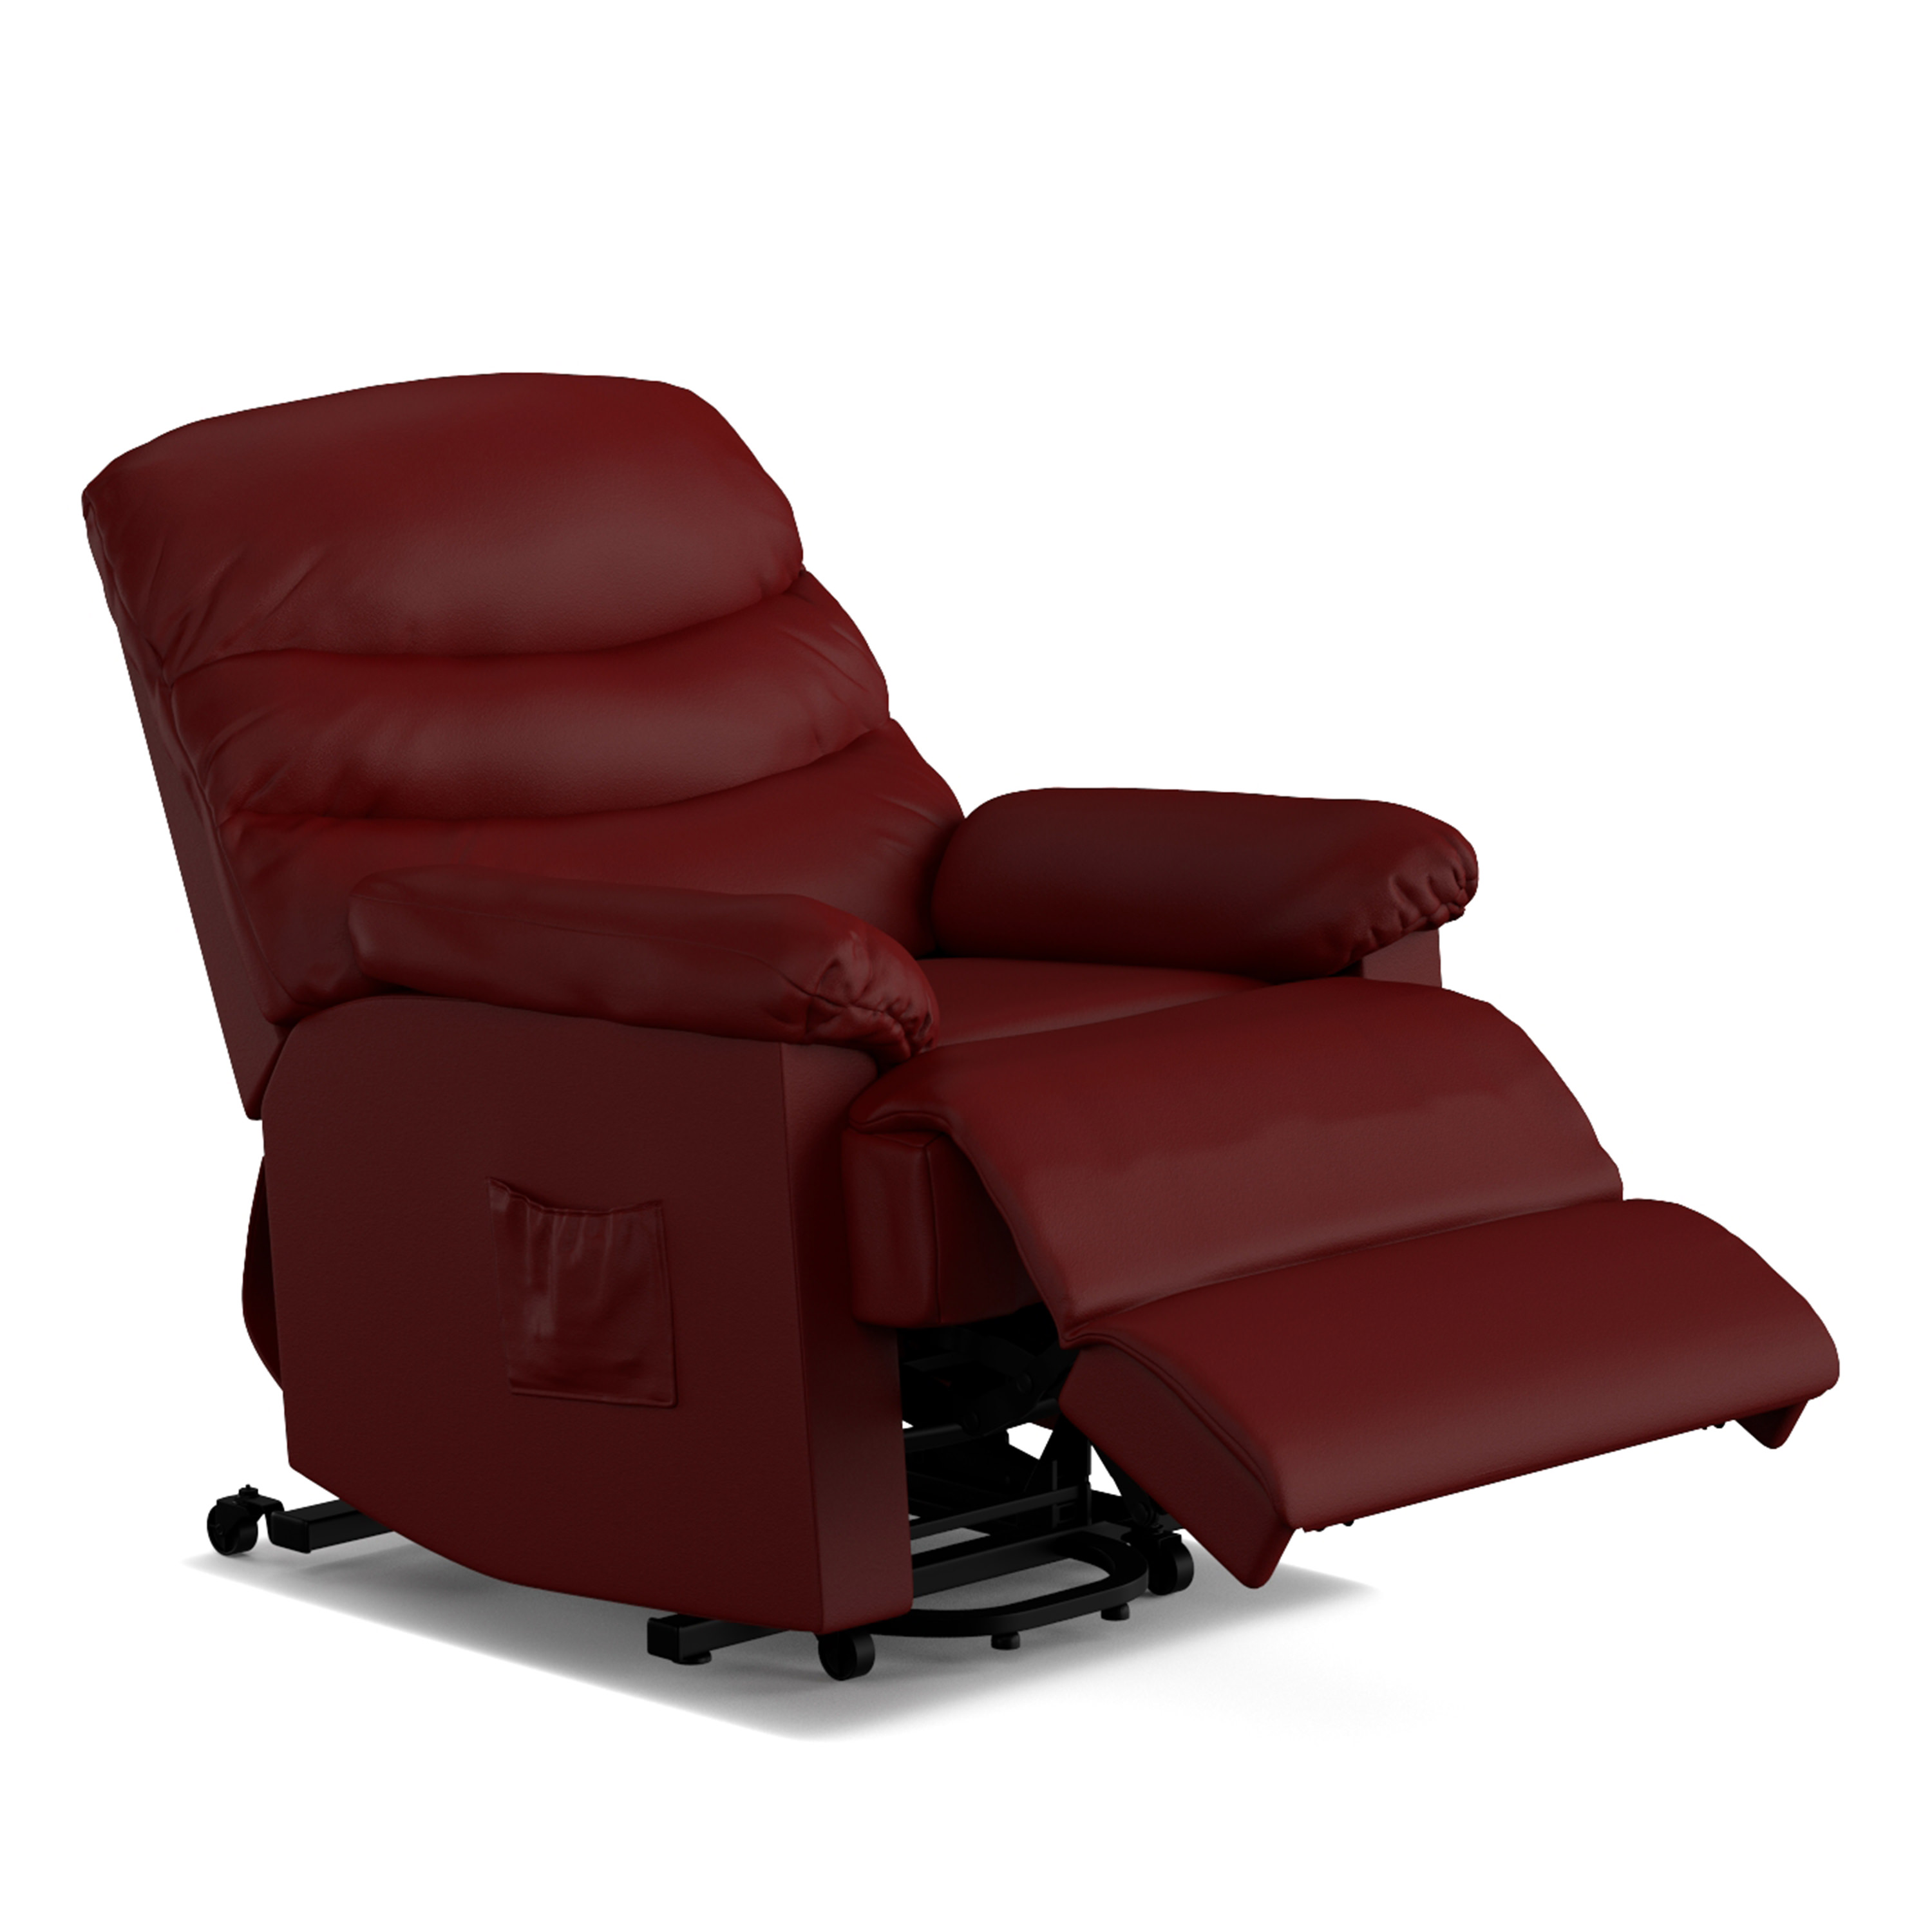 Wall Hugger Lift Chair Ordway Wall Hugger Power Recliner And Lift Chair In Burgundy Red Pu